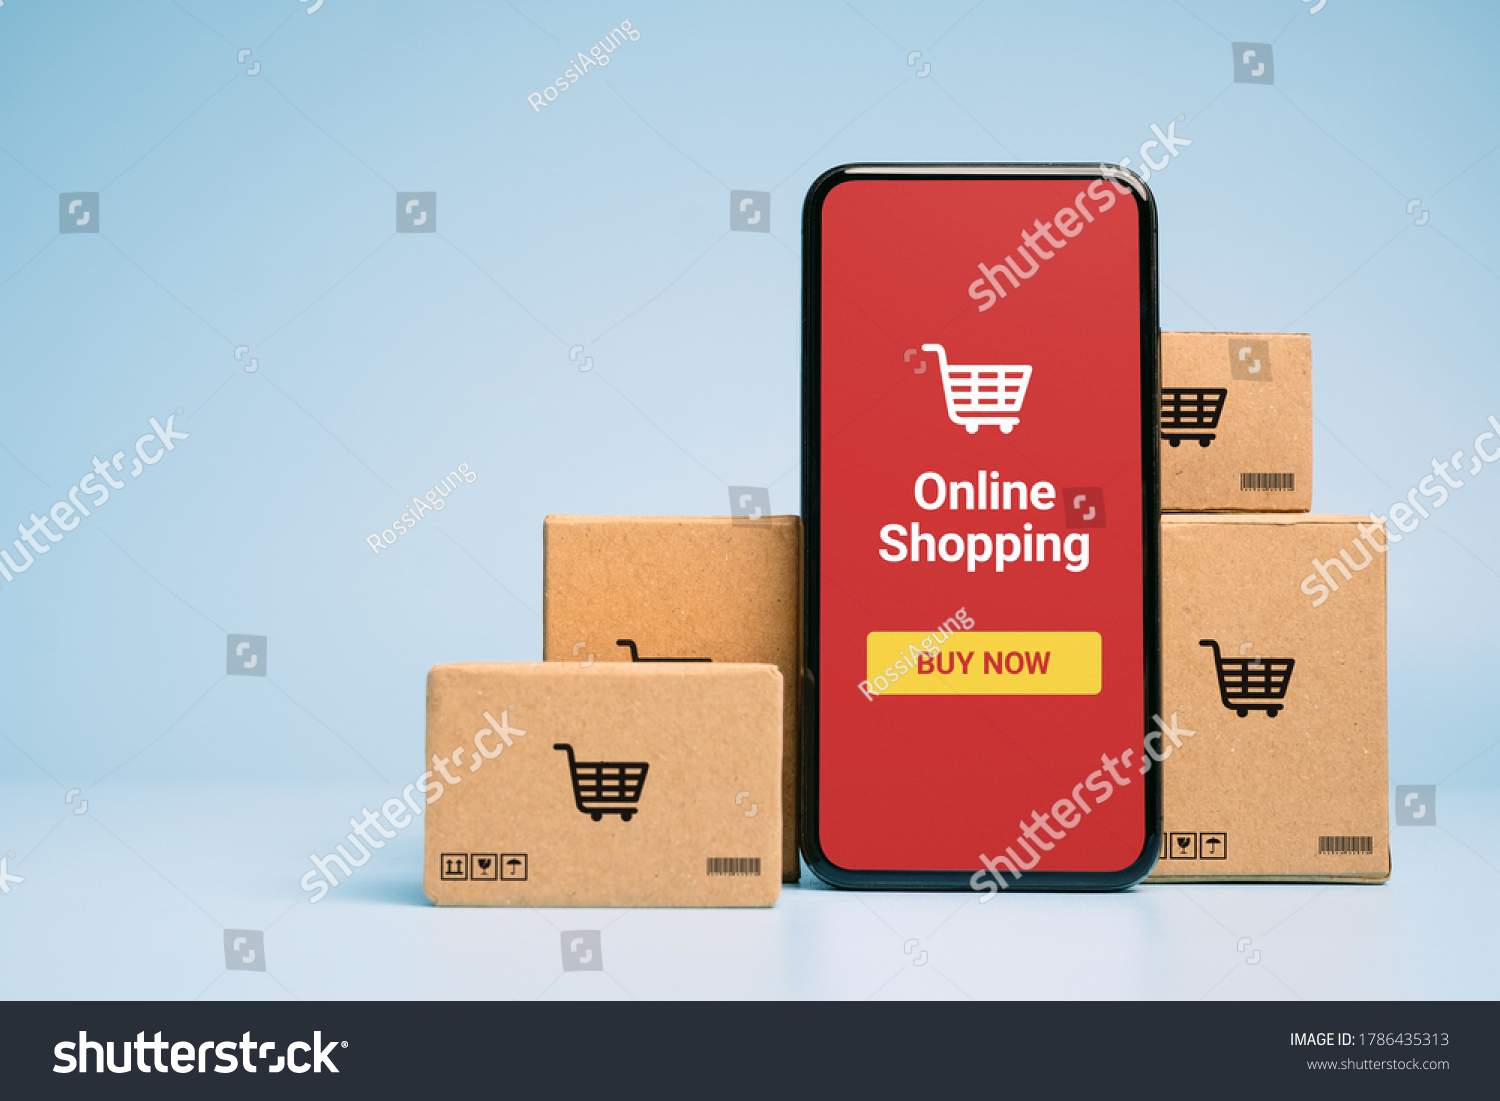 Concept online Sopping. boxes and shopping bag with Smartphone Online Shopping screen. #1786435313